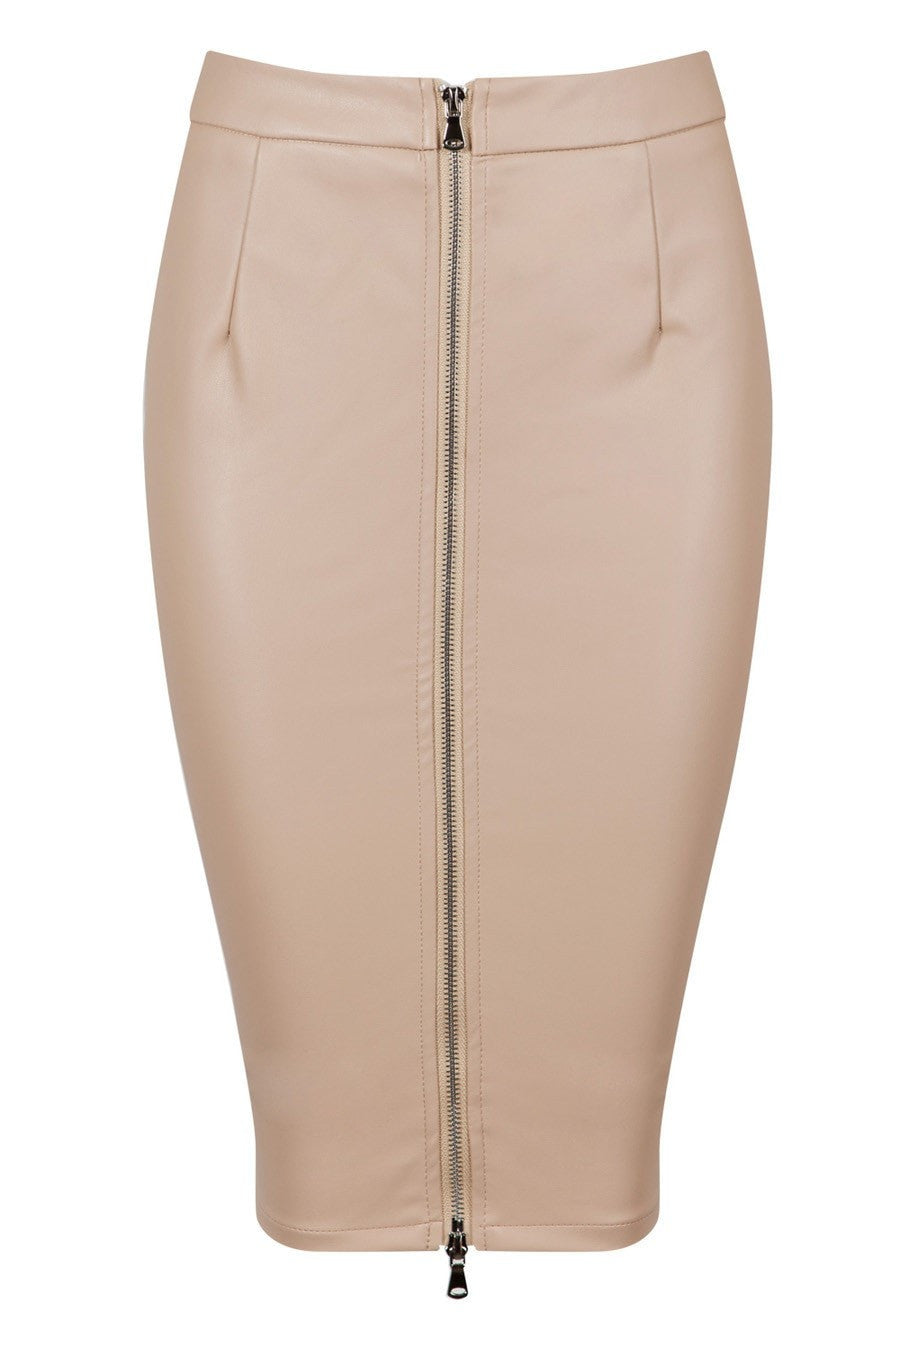 Honey Couture ZOE Nude Vegan Leather Zip Front Pencil Skirt